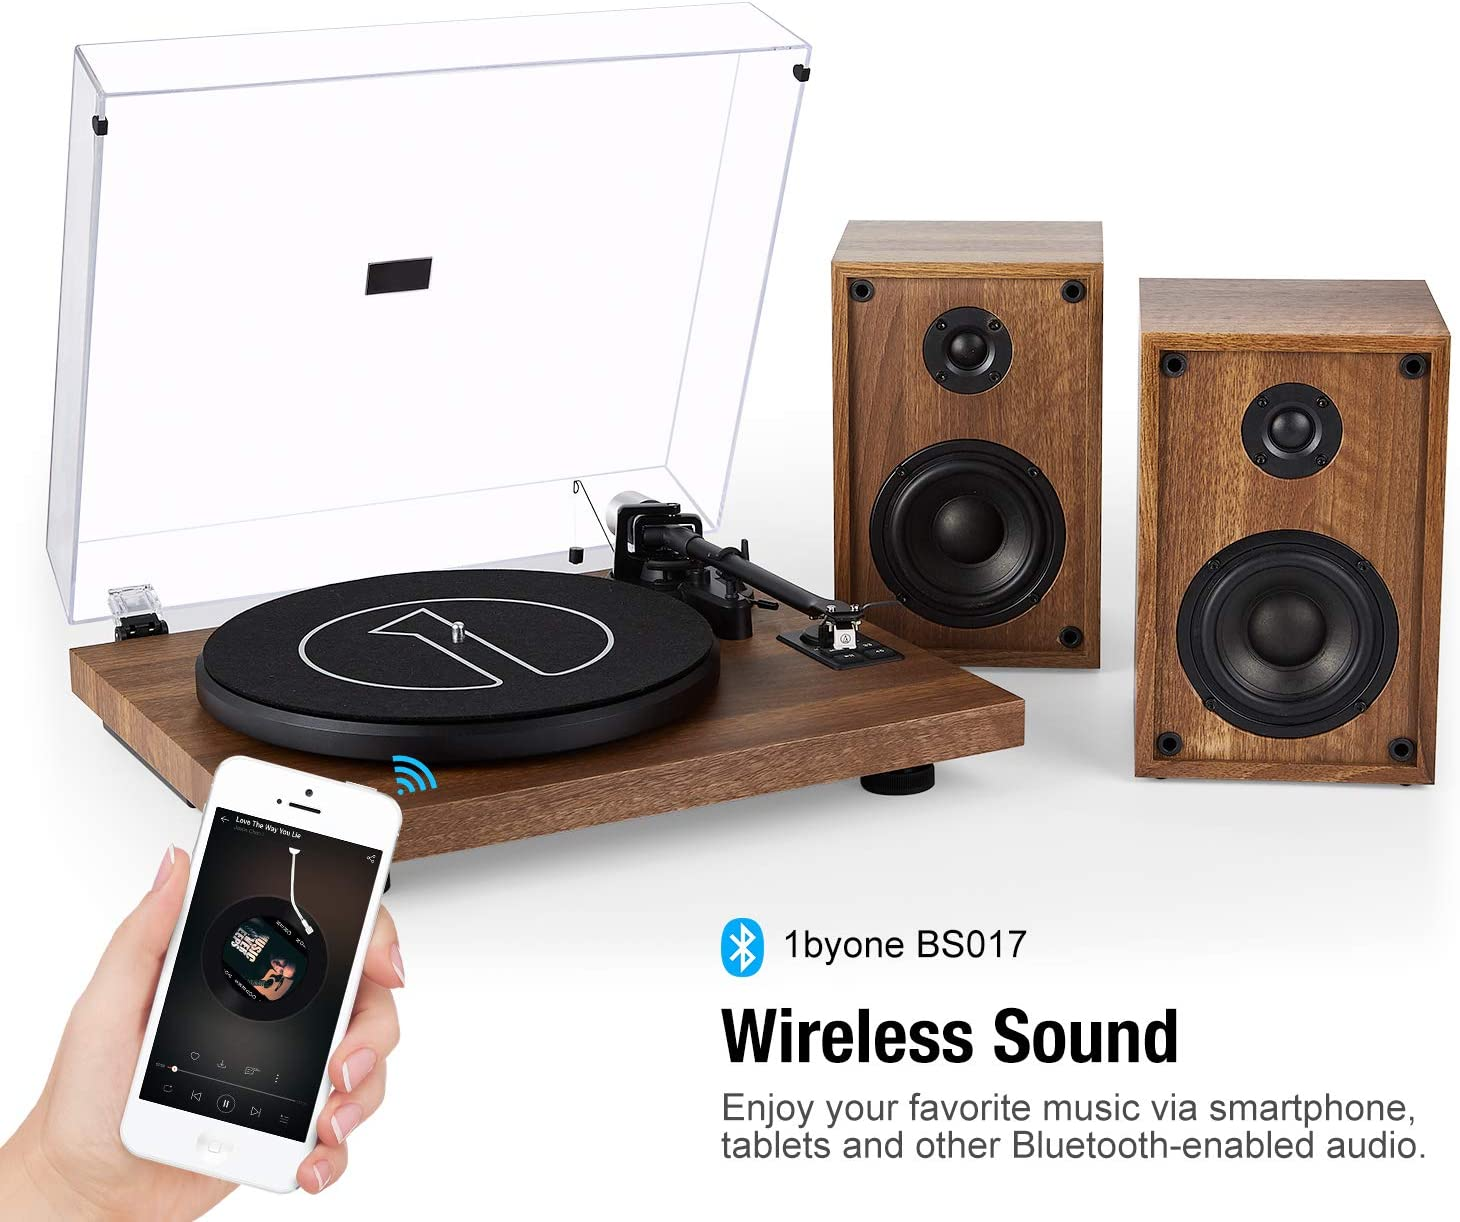 Wireless turntable by one by One